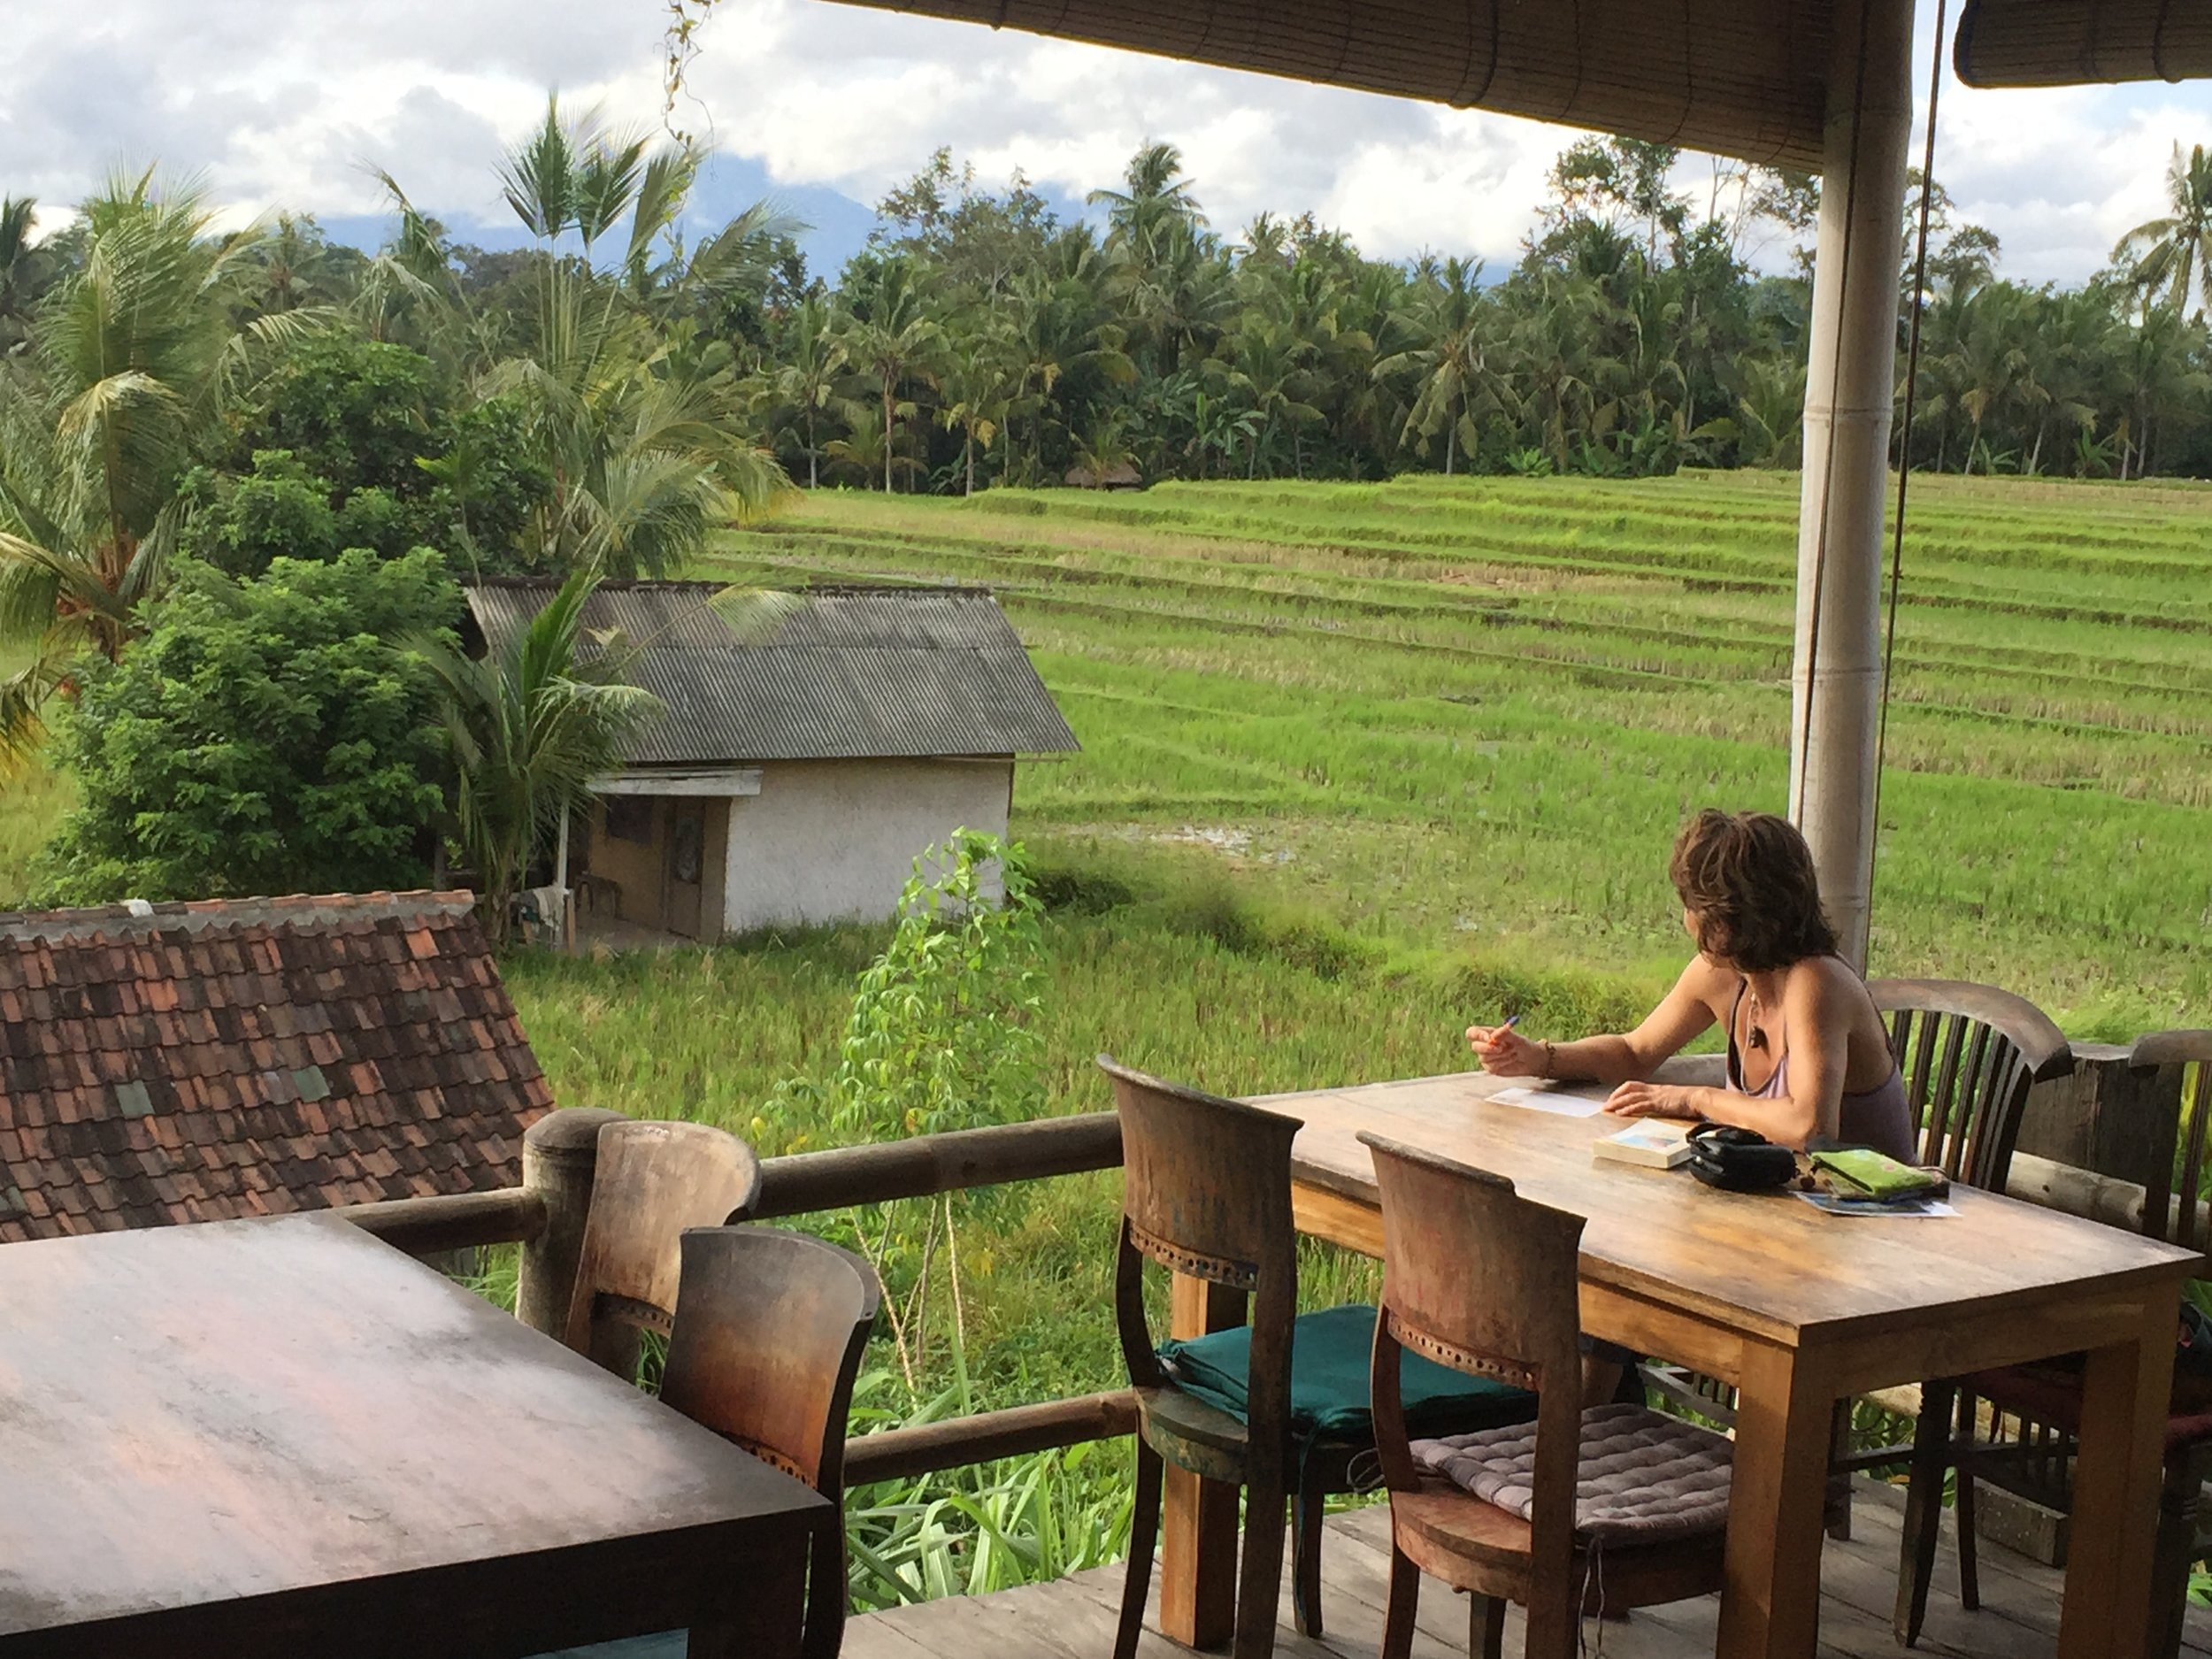 A woman looks out from Sari Organik, a restaurant situated in a restful corner of Ubud.